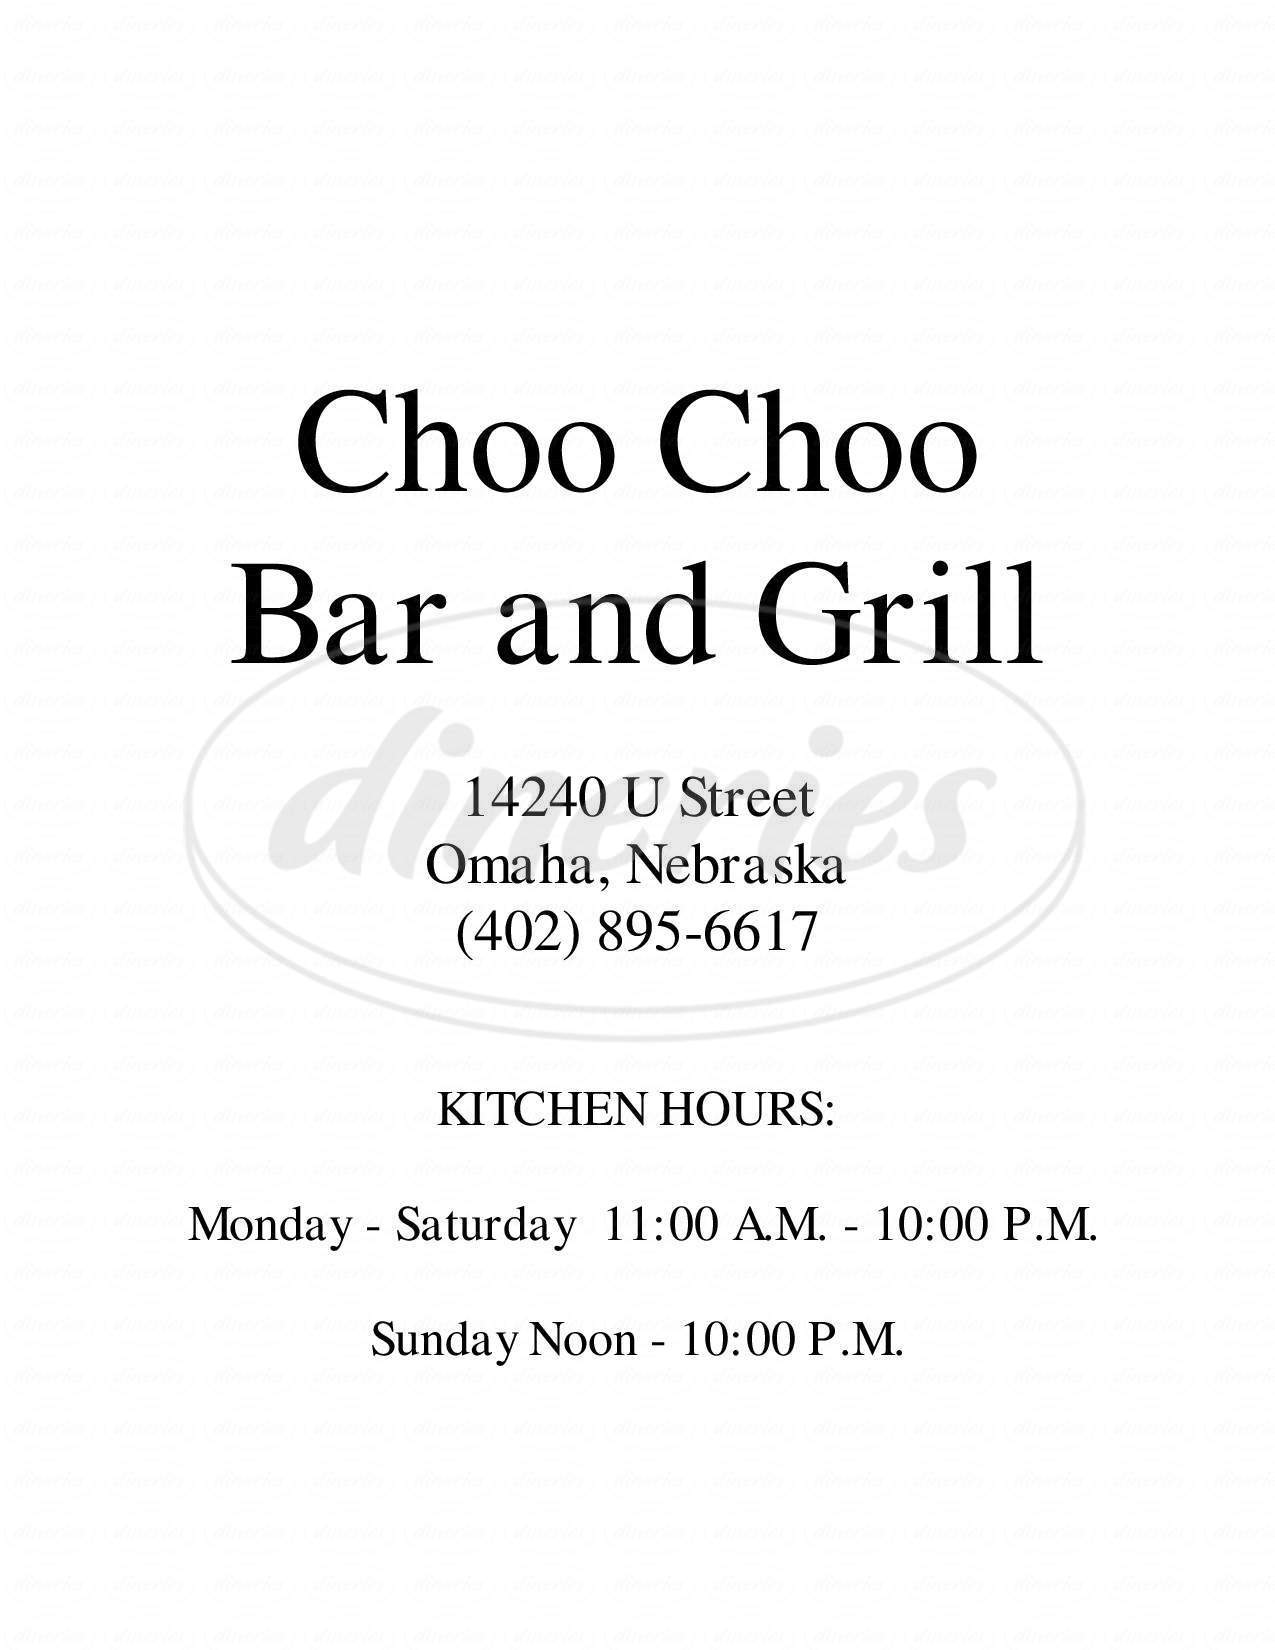 menu for Choo Choo Bar & Grill